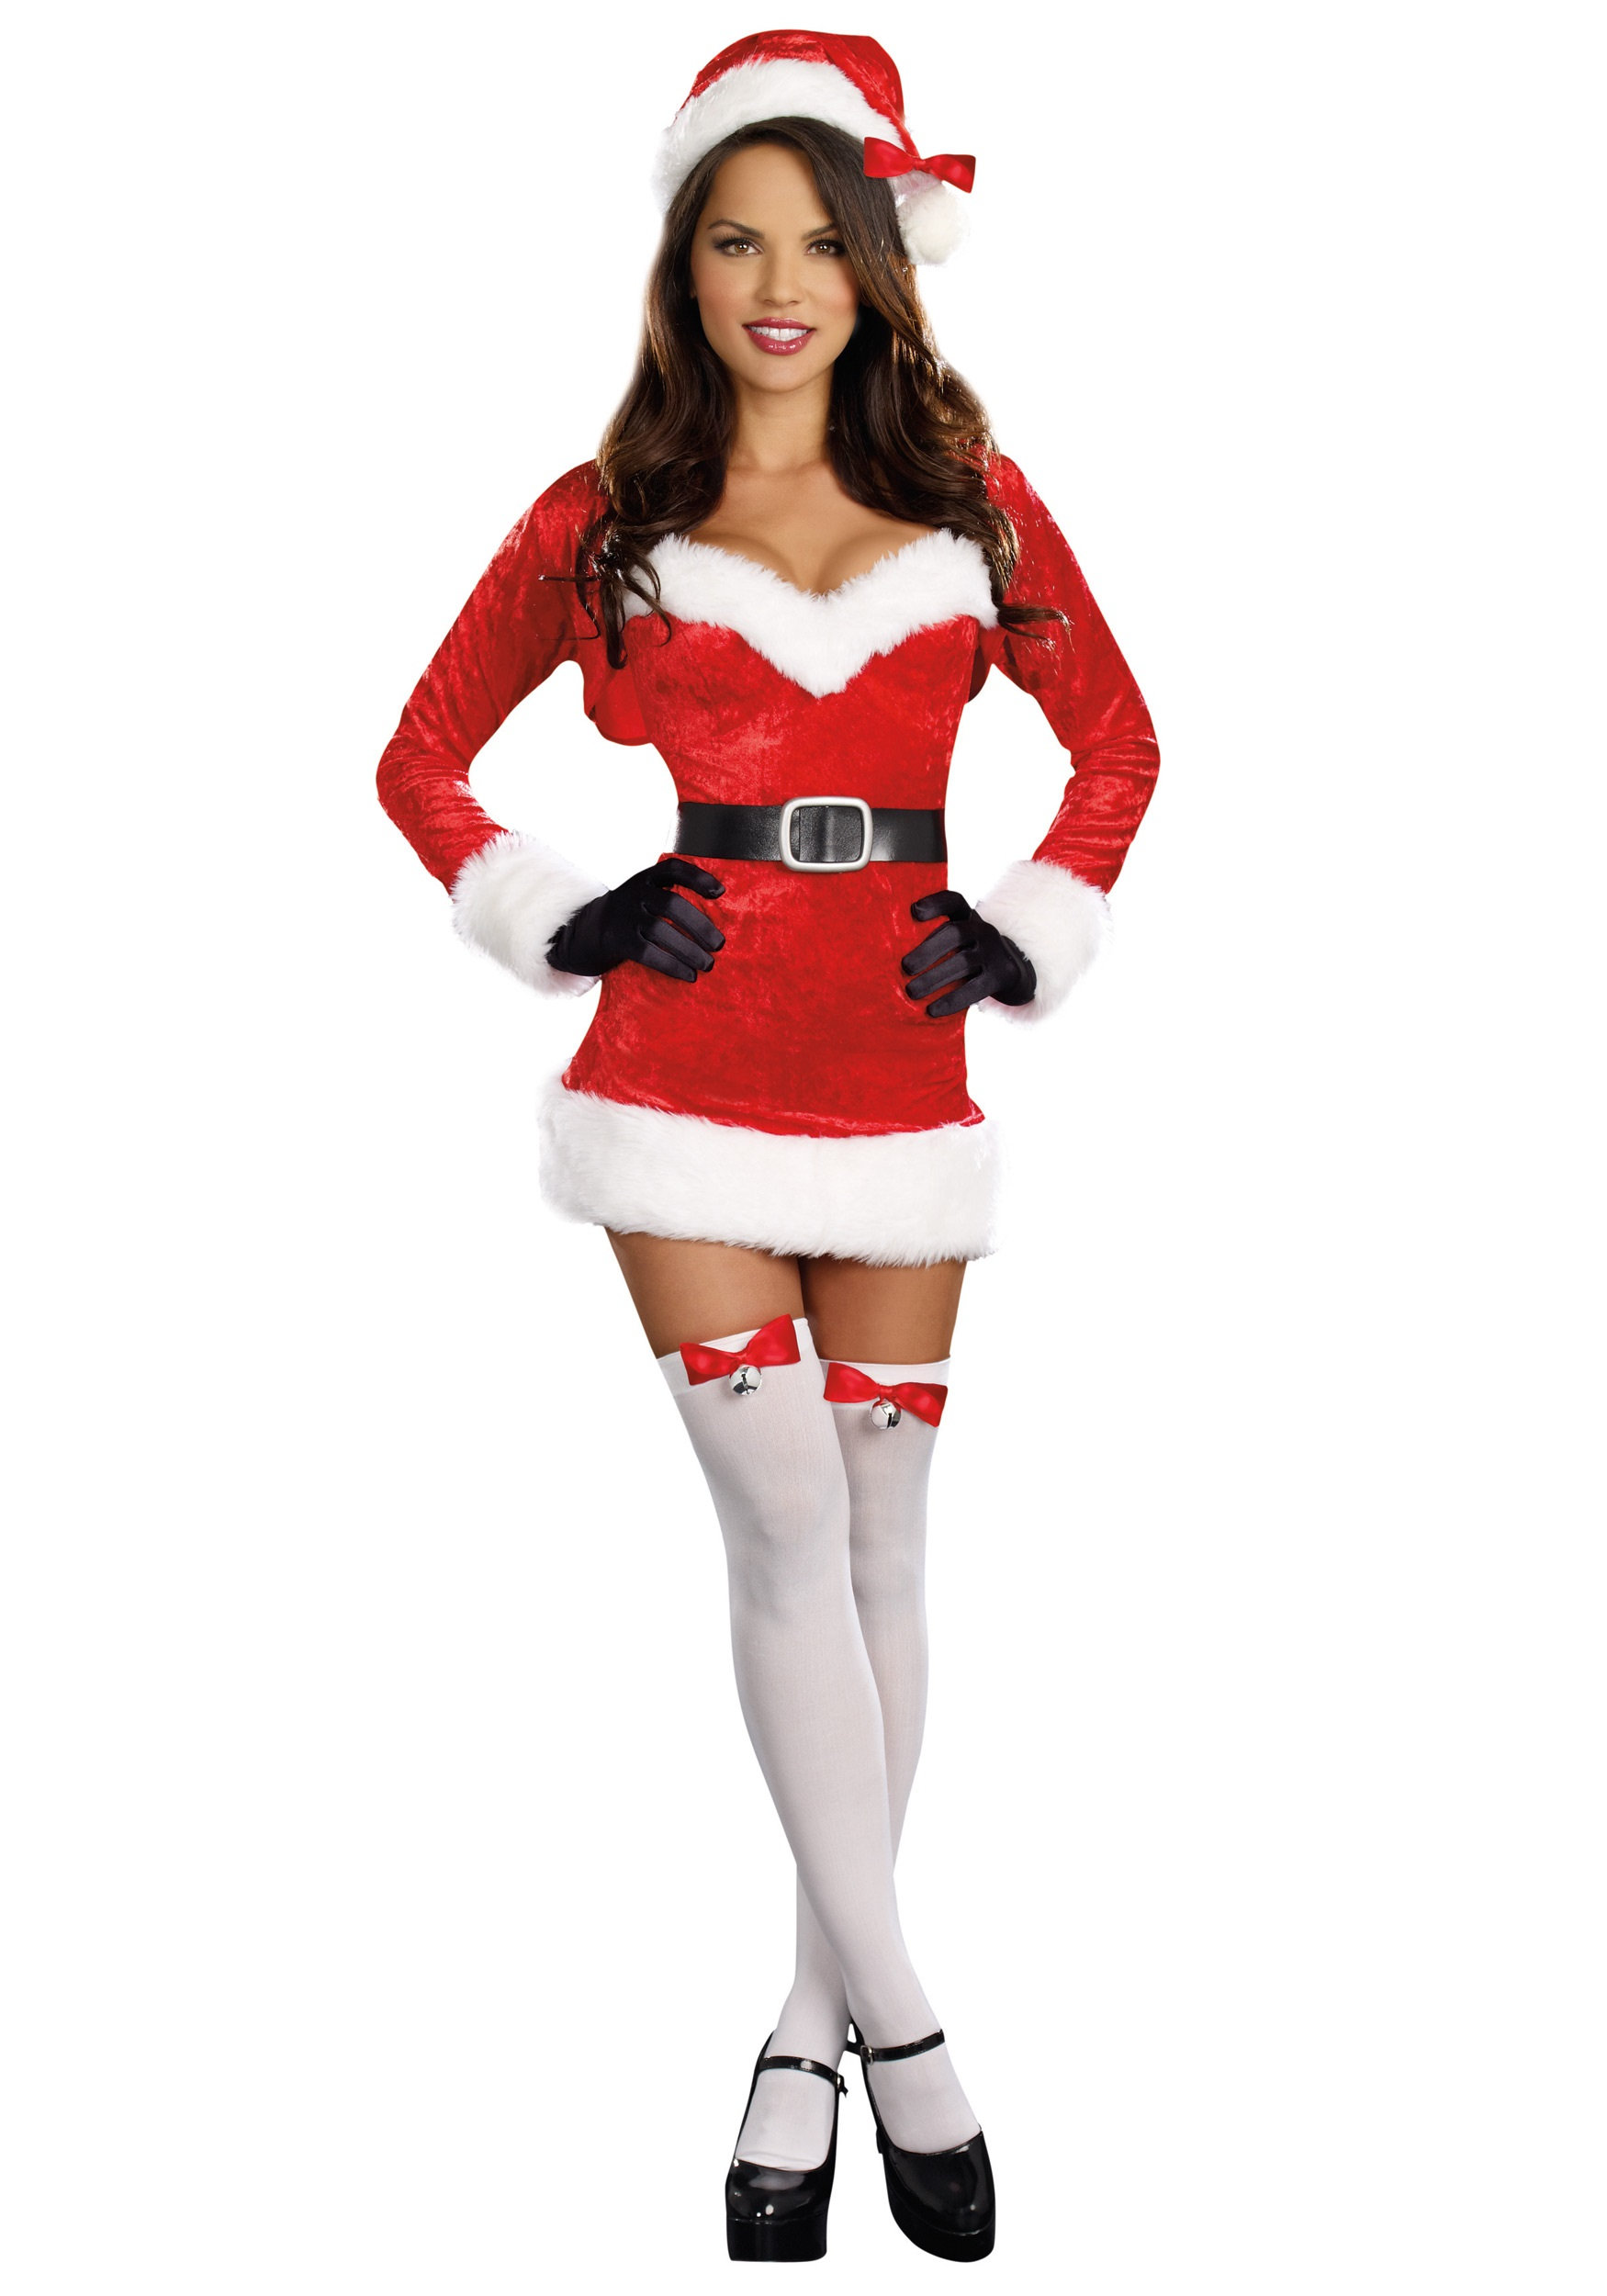 Hot santa claus babe — photo 14